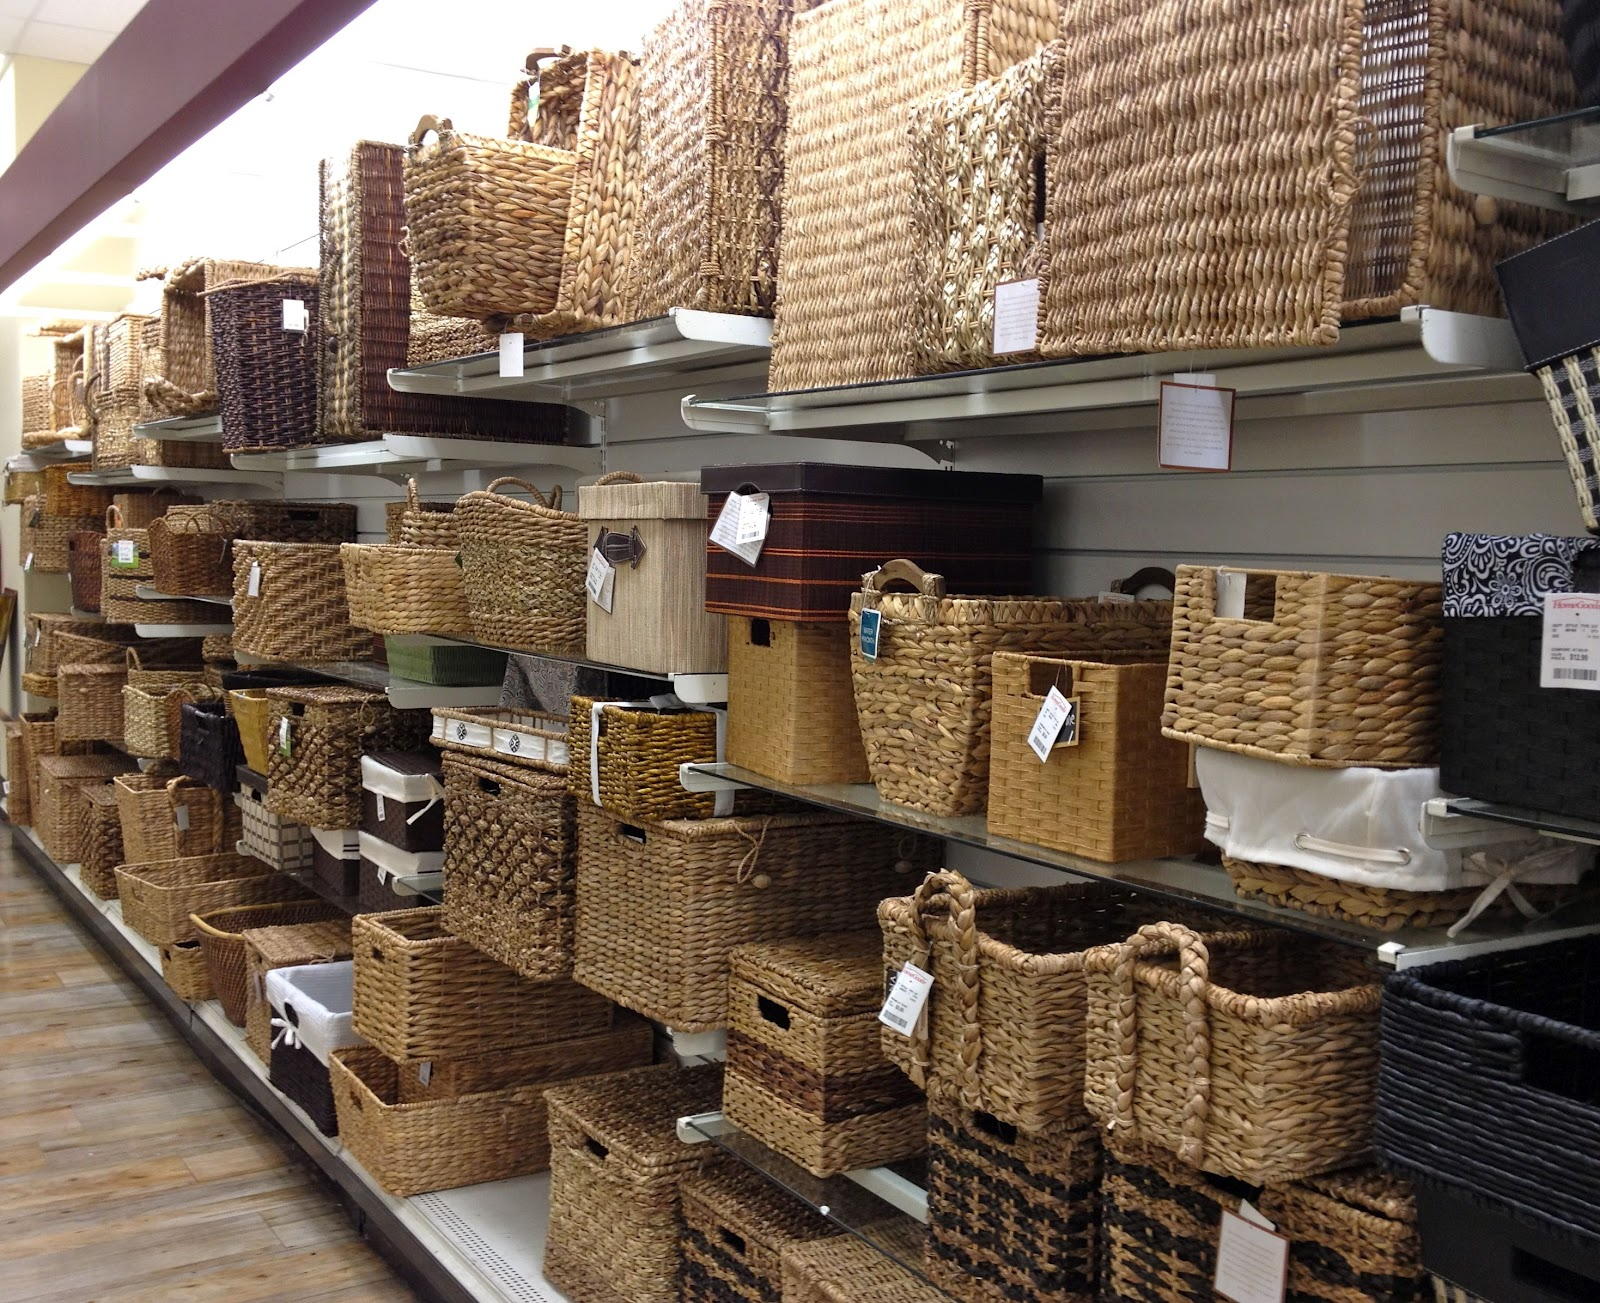 Decorative Baskets: Inspiration for Using Them in Your ...